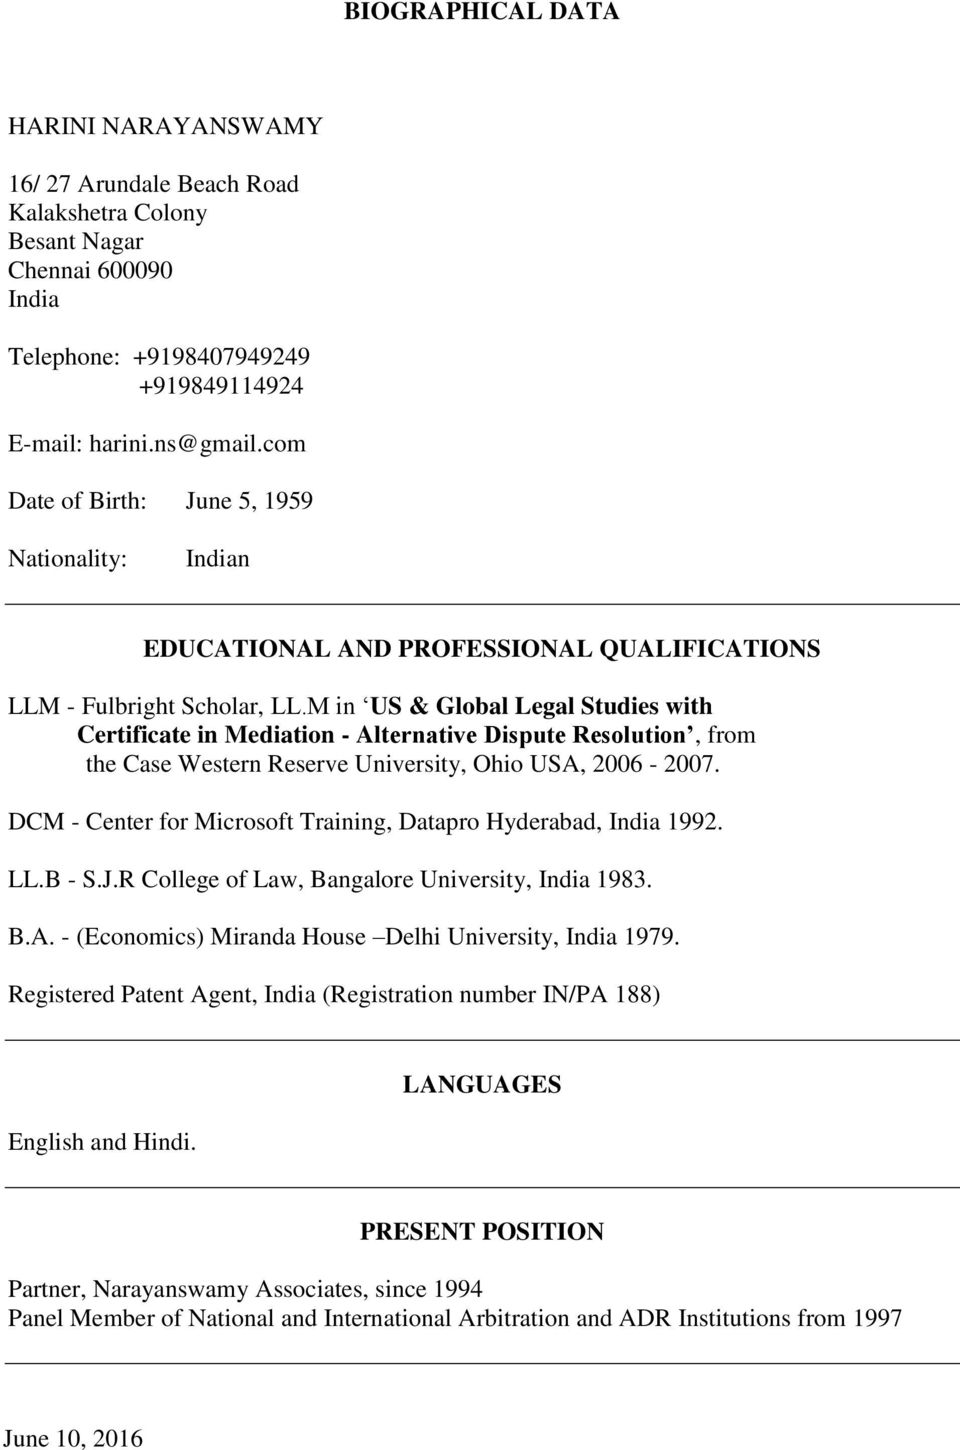 M in US & Global Legal Studies with Certificate in Mediation - Alternative Dispute Resolution, from the Case Western Reserve University, Ohio USA, 2006-2007.